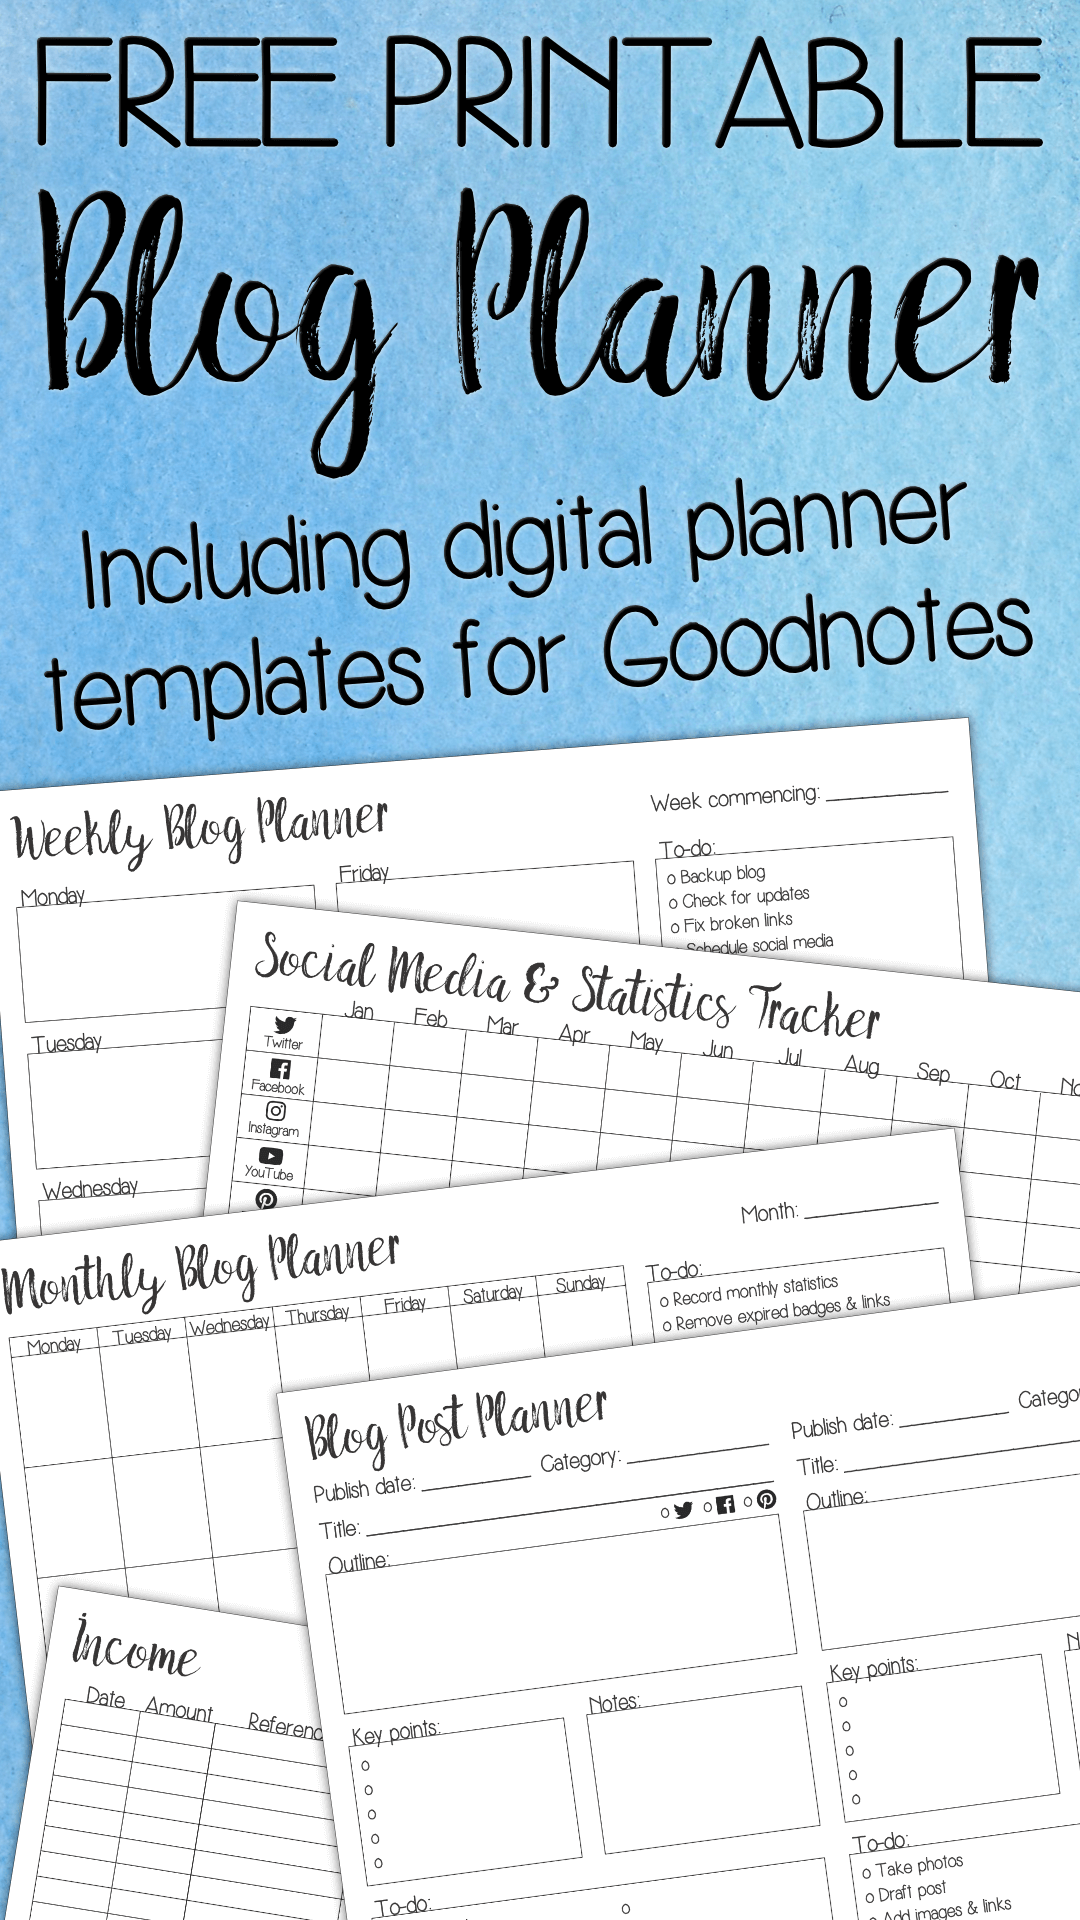 photo about Blog Planner Template referred to as Totally free printable Blog site Planner - inc. electronic Goodnotes